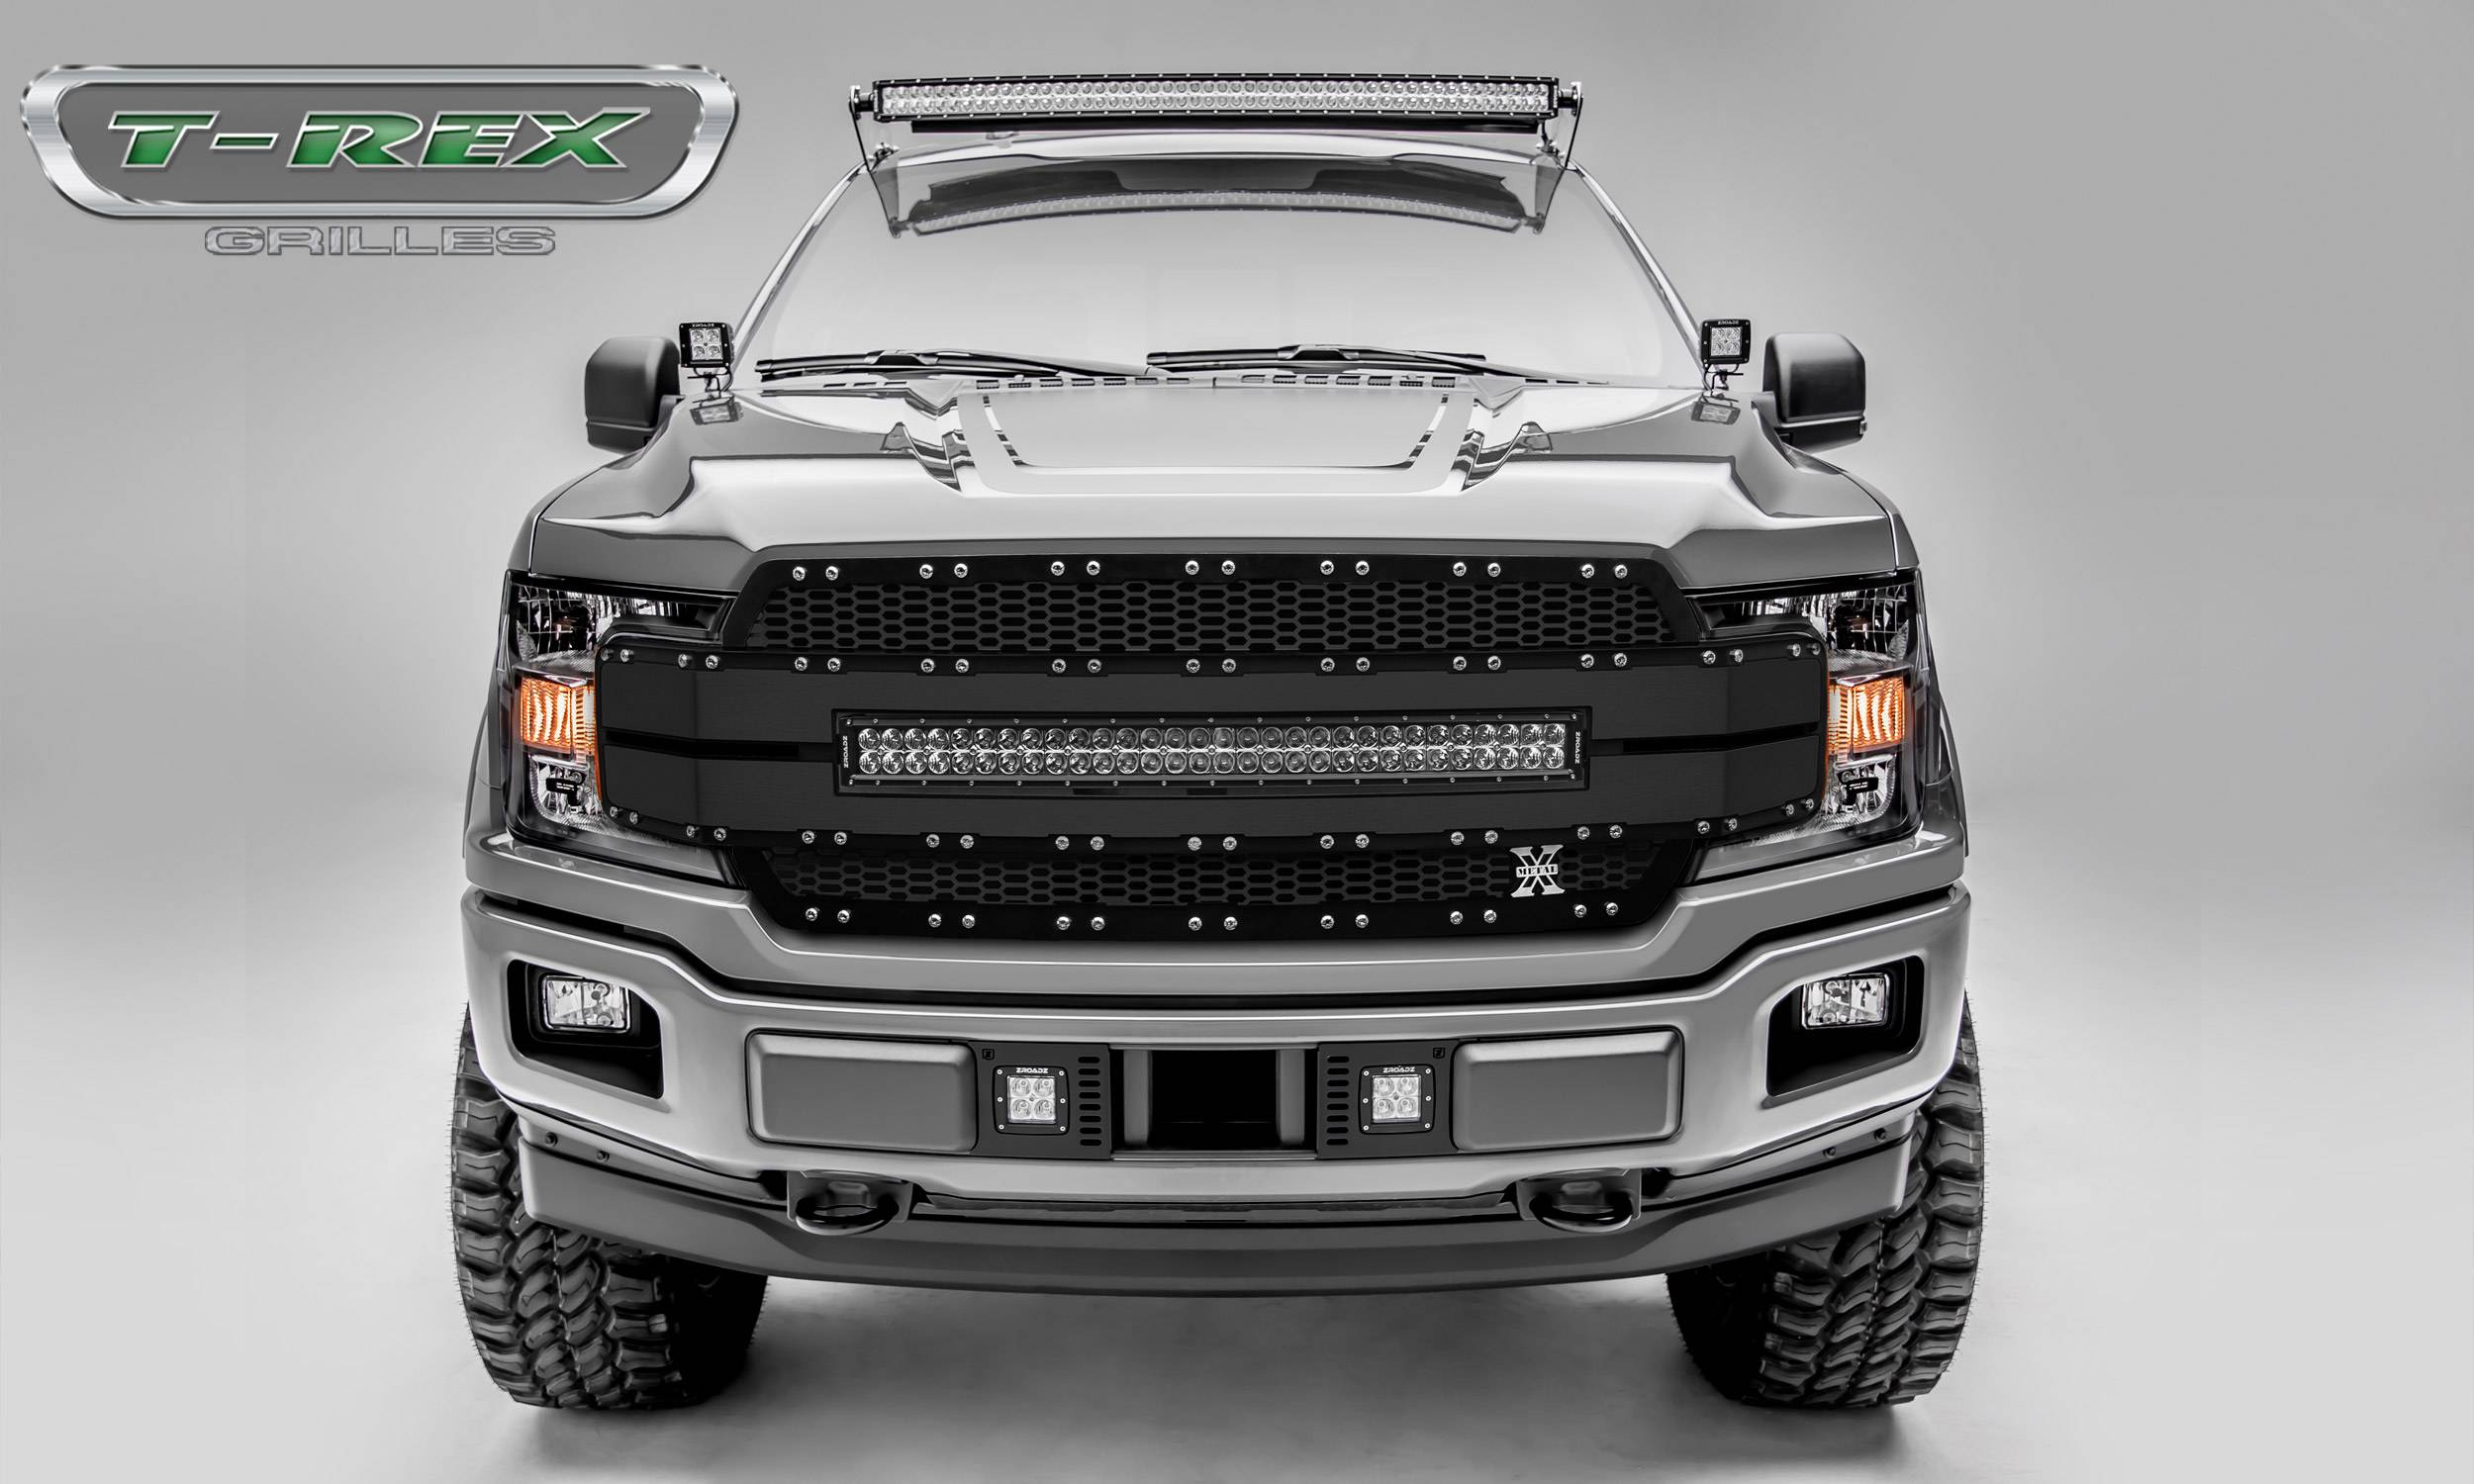 Ford F 150 Torch Al Series Replacement Grille Includes 1 30 Led Universal Wiring Harness For Car Light Bar Wire Aluminum Frame Pt 6315781